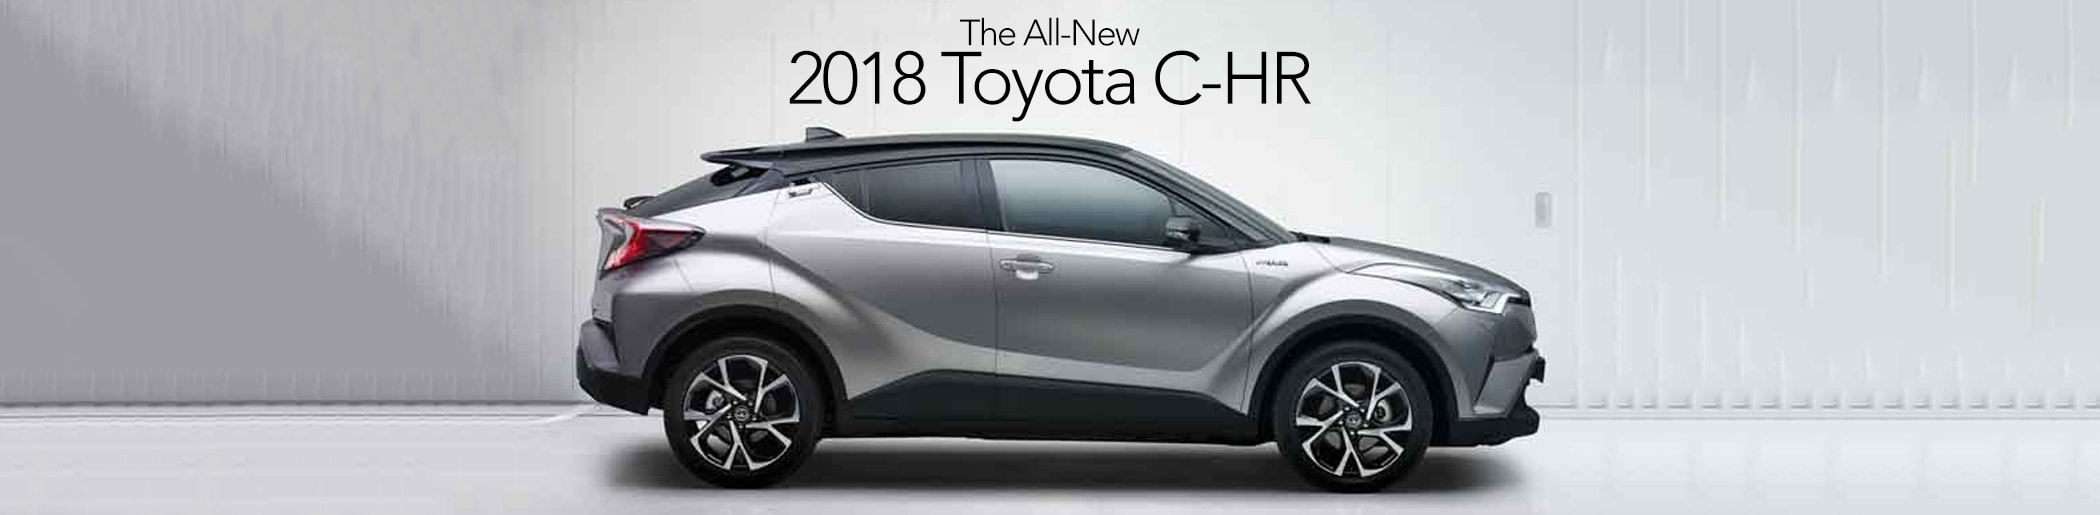 All New 2018 Toyota C-HR